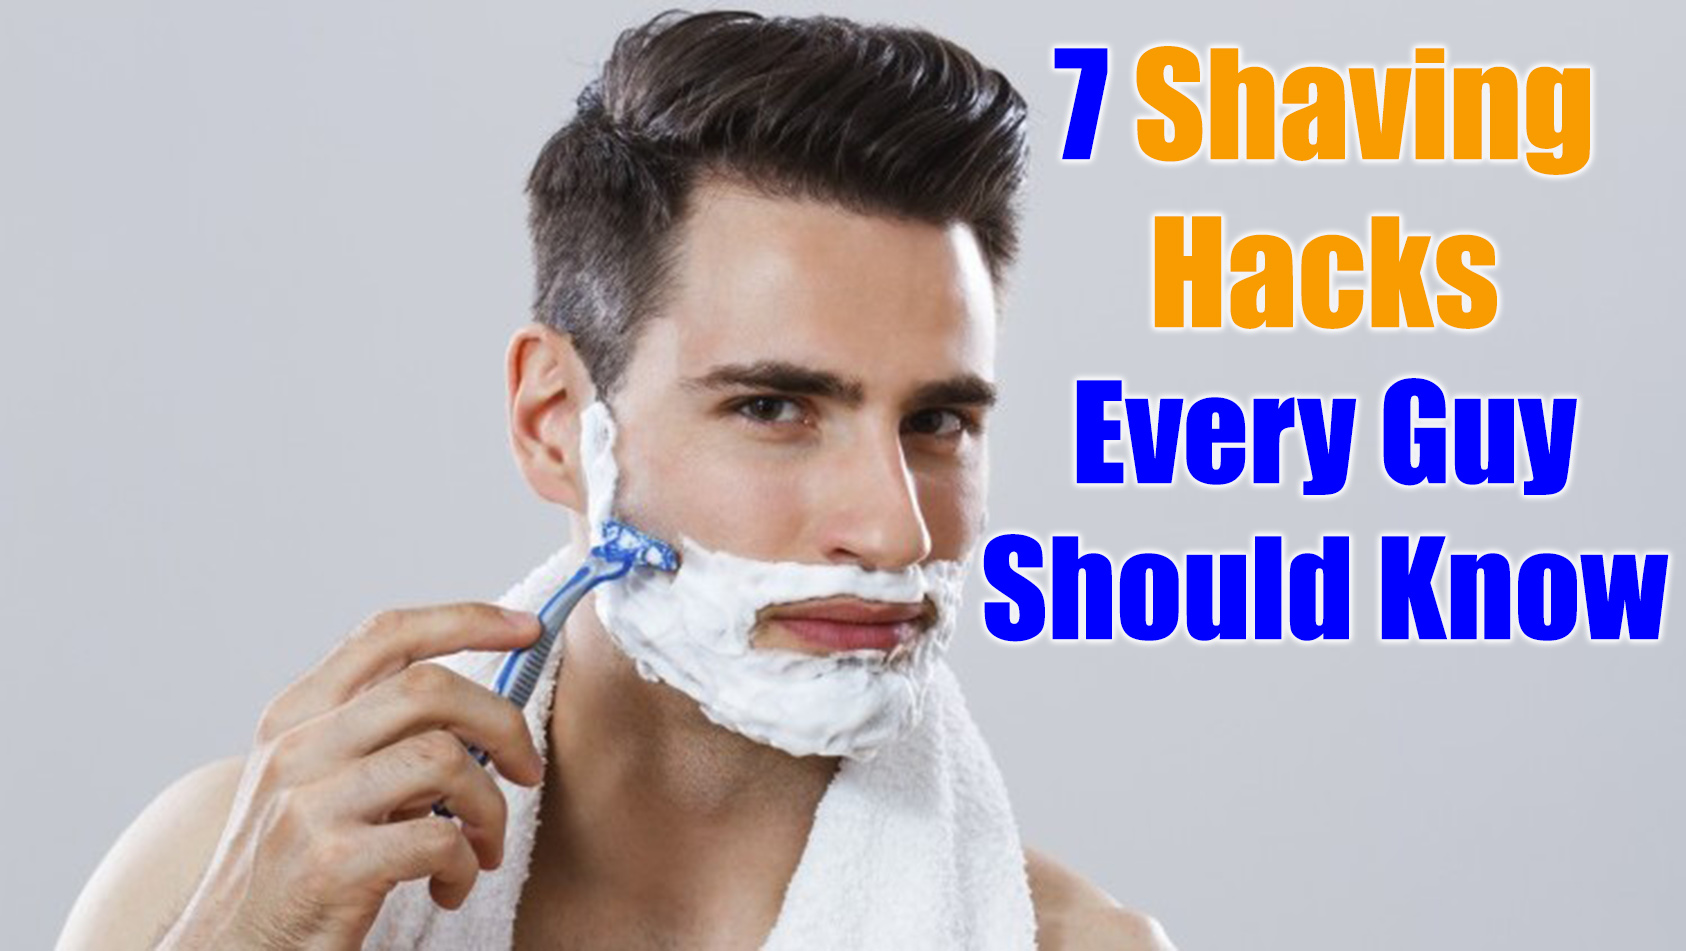 Shaving hacks for guys